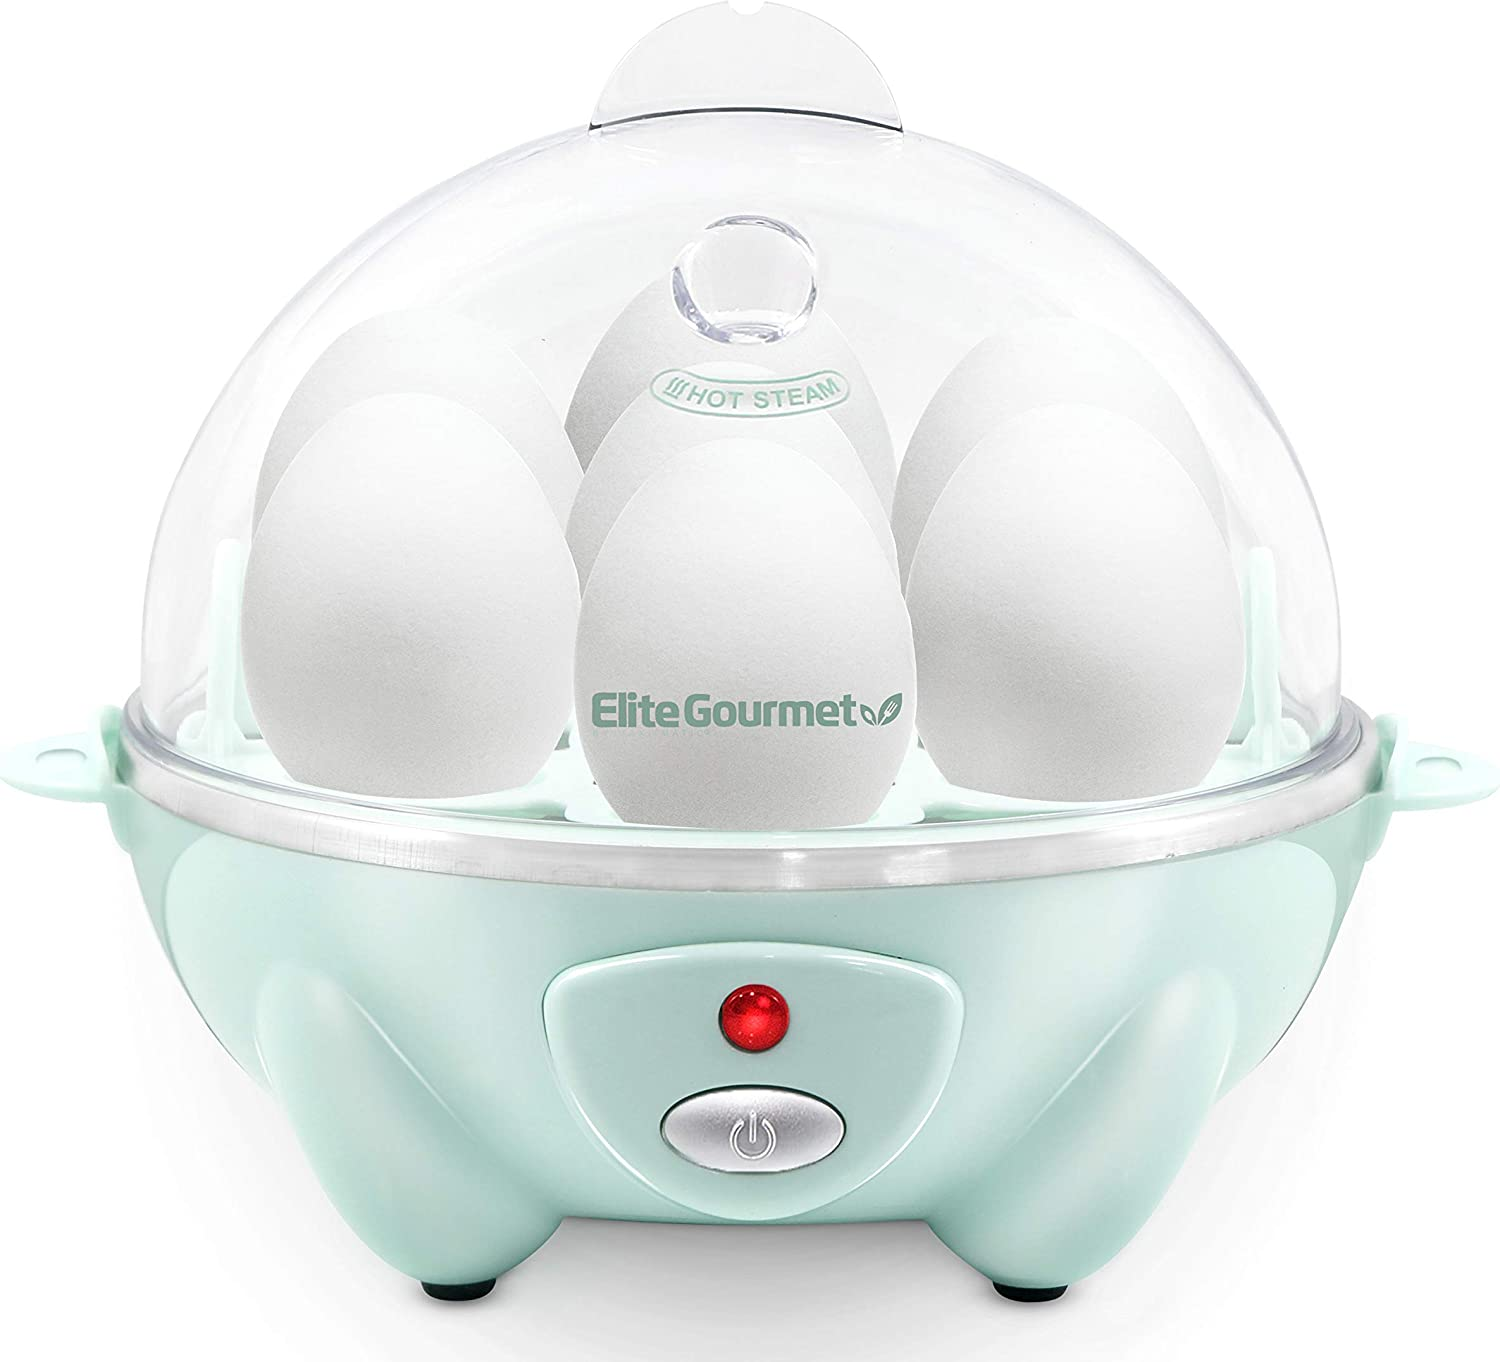 Elite Gourmet EGC007M EGC-007M Easy Electric Poacher, Omelet Soft, Medium, Hard-Boiled Boiler Cooker with Auto Shut-Off and Buzzer, BPA Free, 7 Egg Capacity, Mint